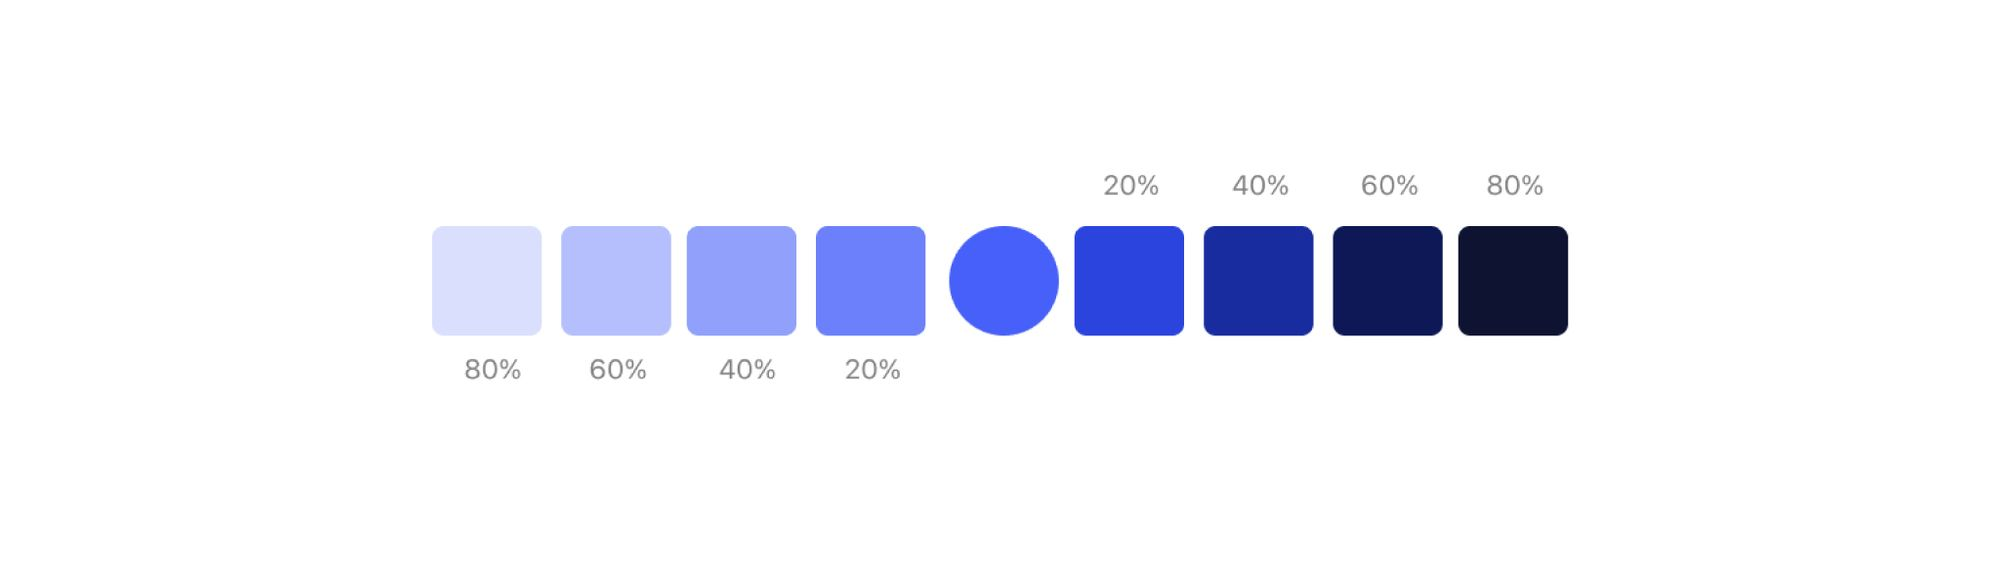 Image of a complete color gradient for shades of blue on ZenHub